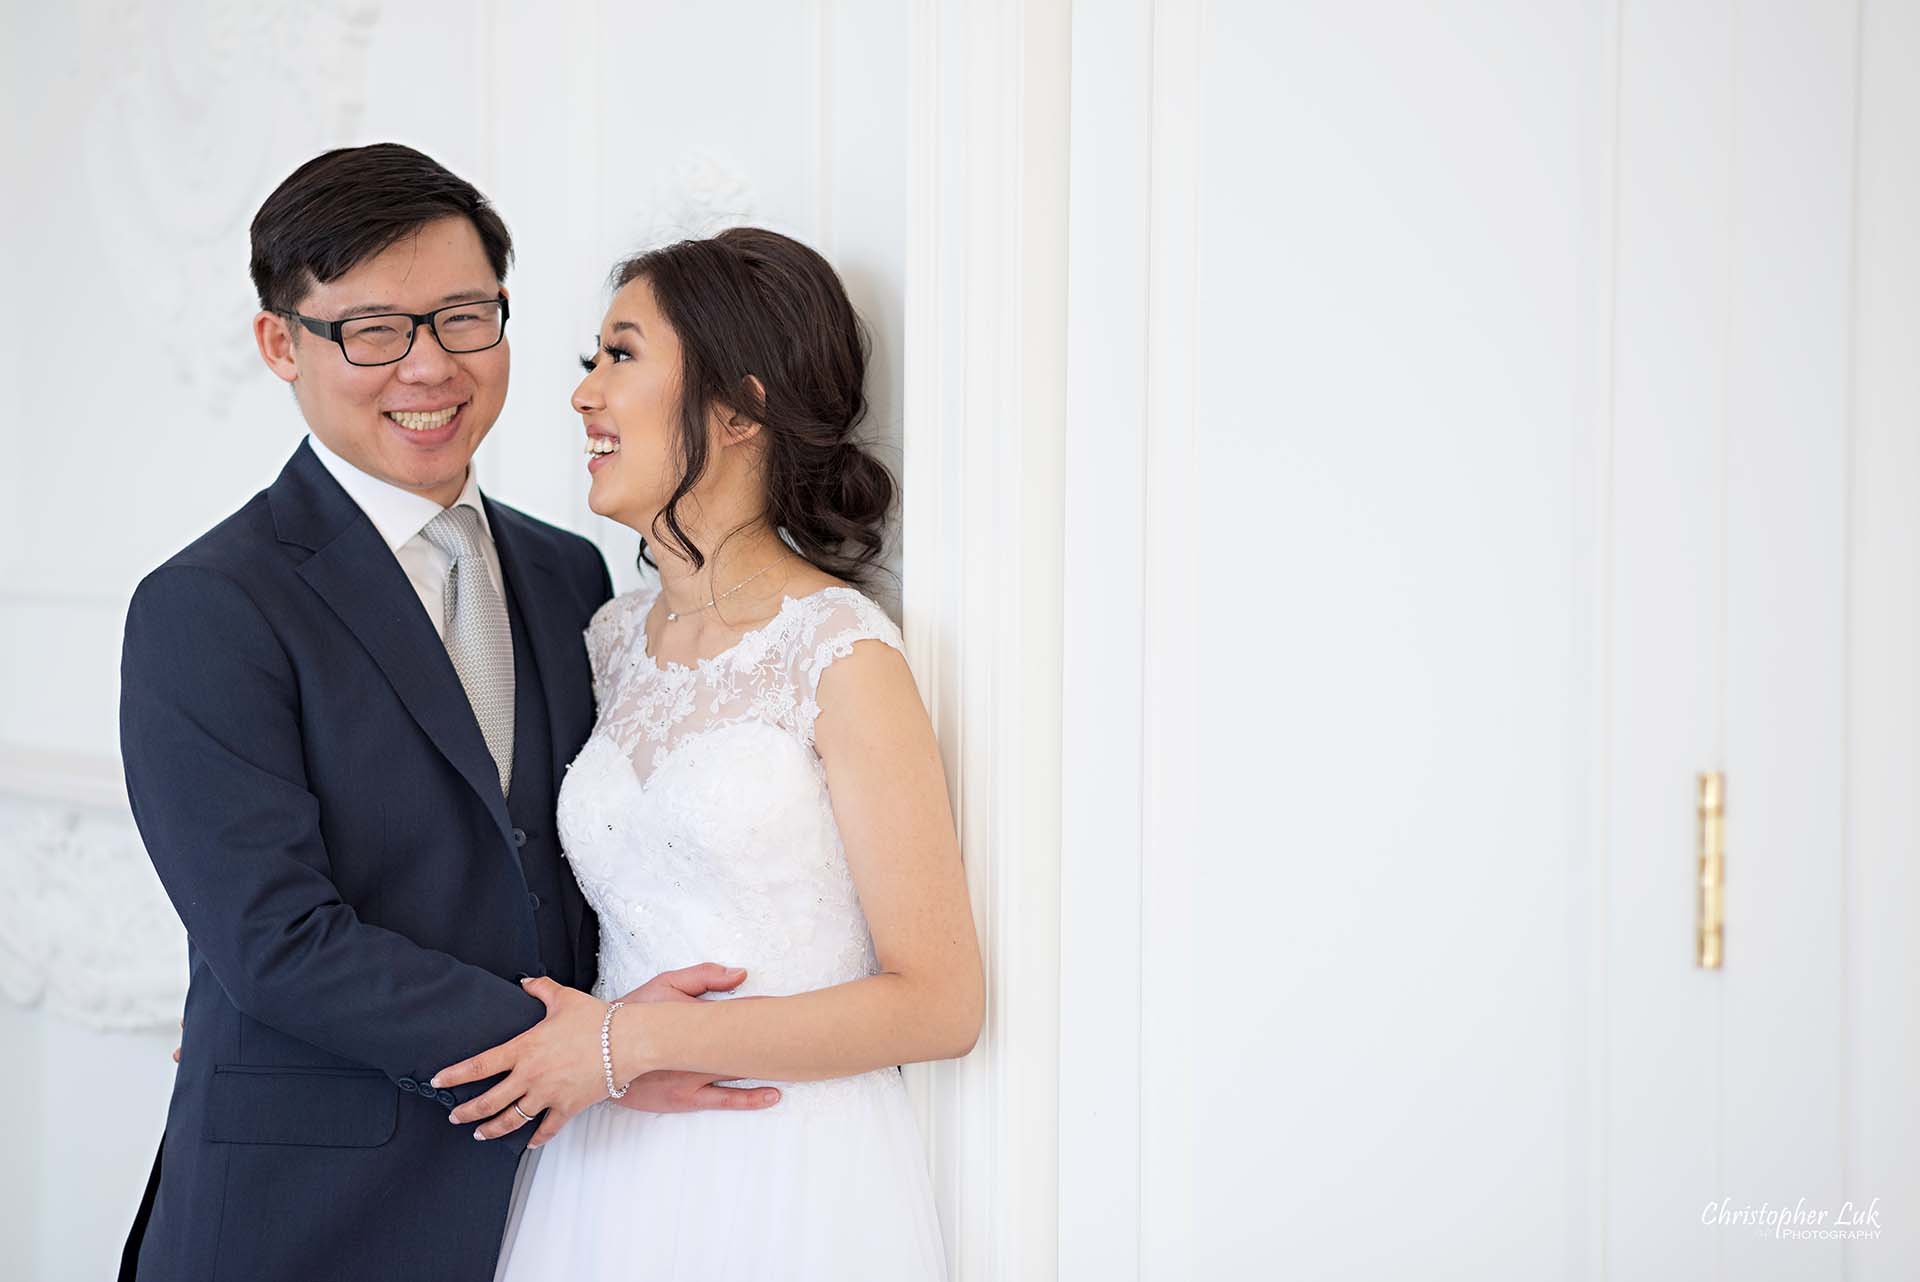 Christopher Luk Toronto Wedding Photographer - Mint Room Studios Bride Groom Natural Candid Photojournalistic Conservatory Ballroom Hug Laugh Close